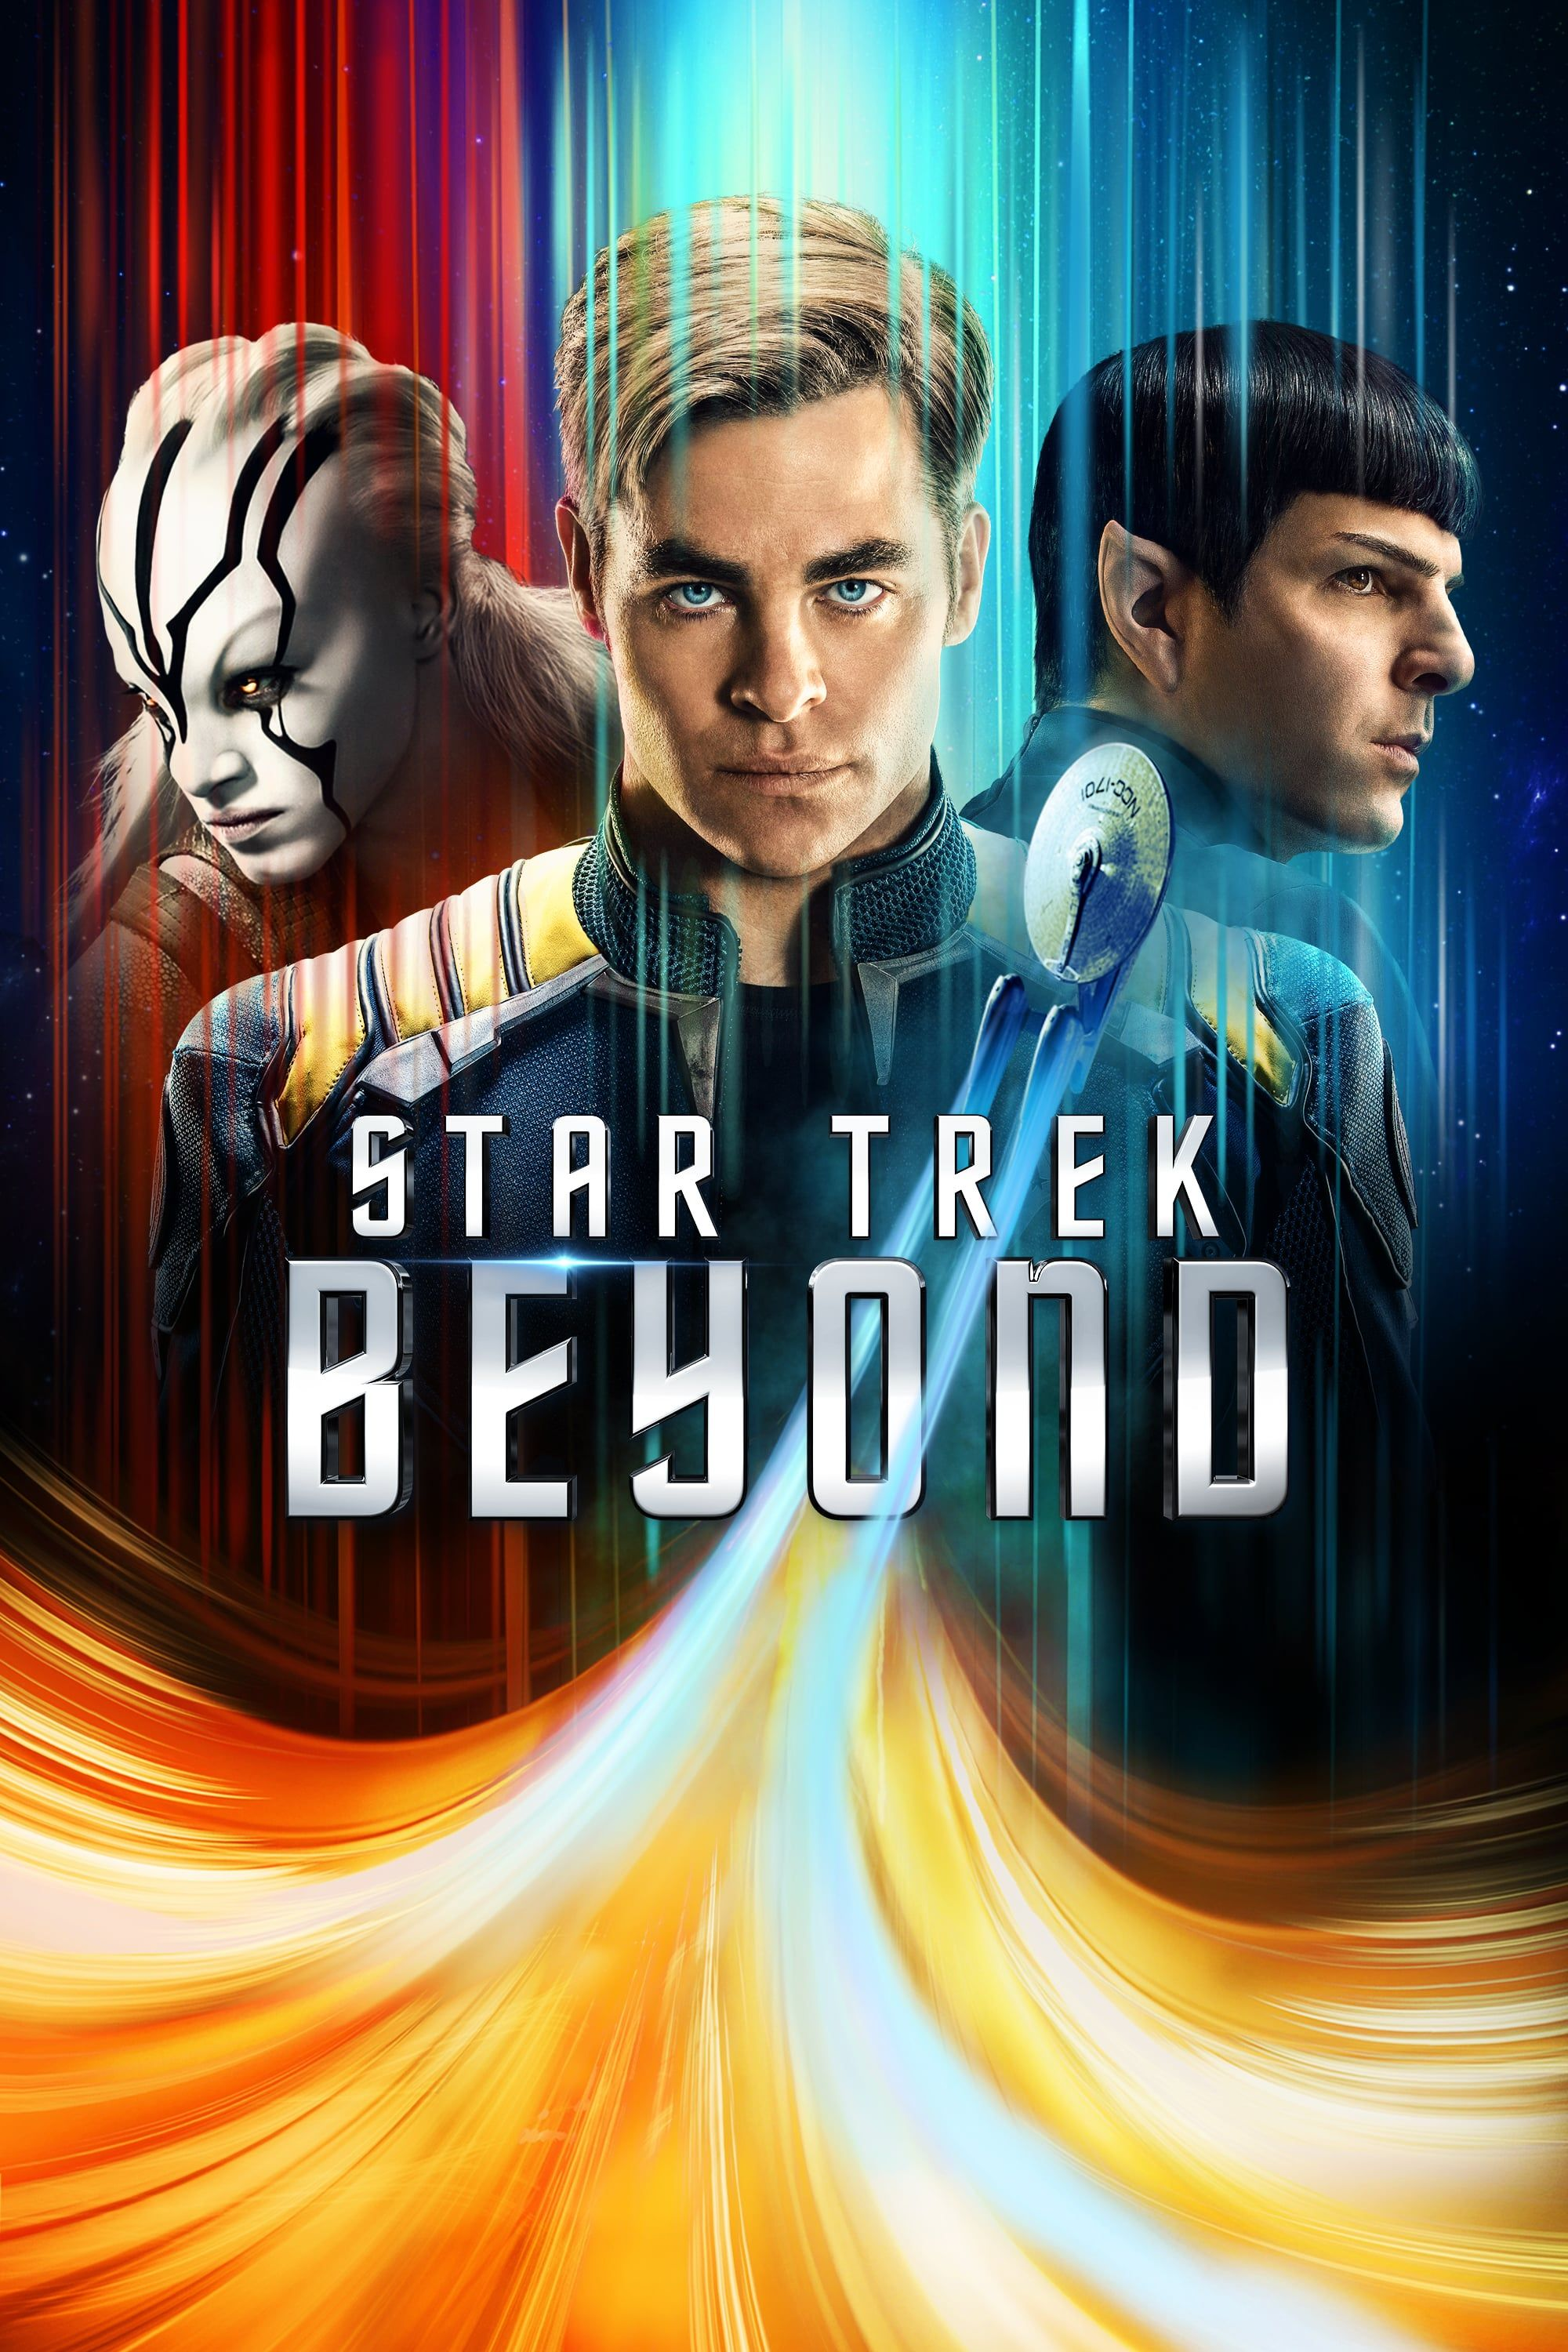 Star Trek Beyond Movie Poster Http Ift Tt 2djkmbg Star Trek